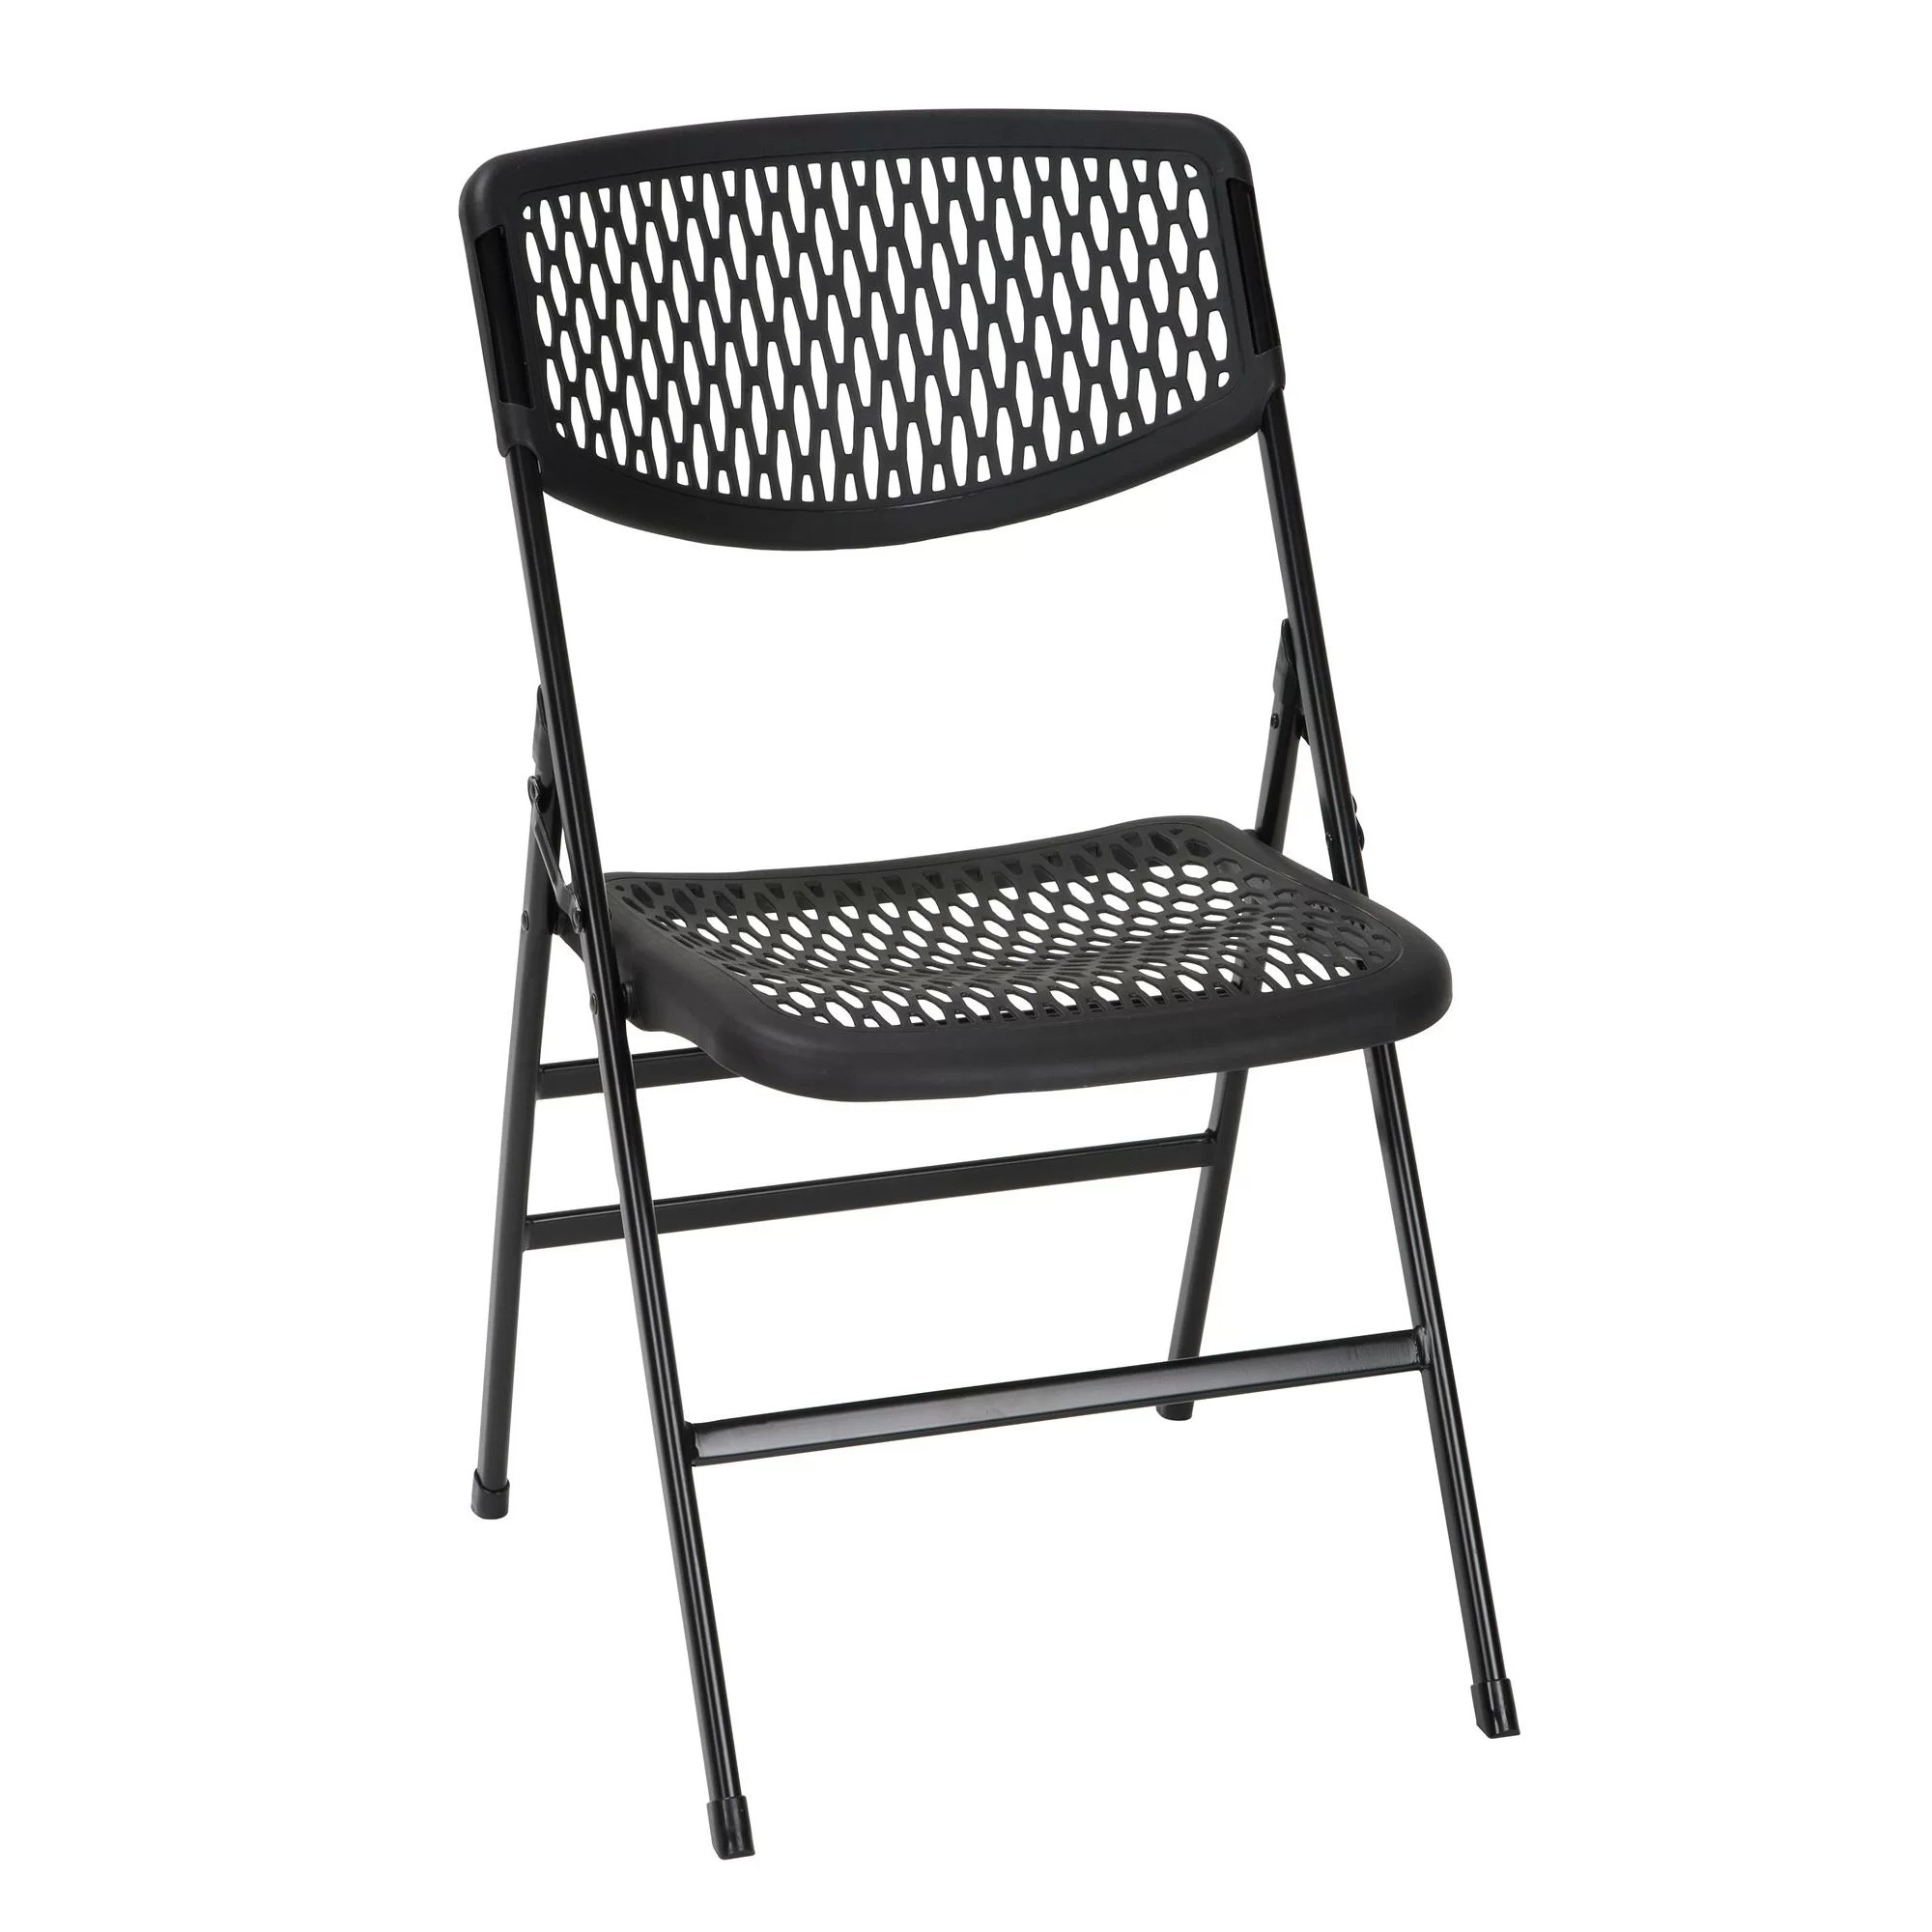 Cosco Home and Office Commercial Resin Mesh Folding Chair